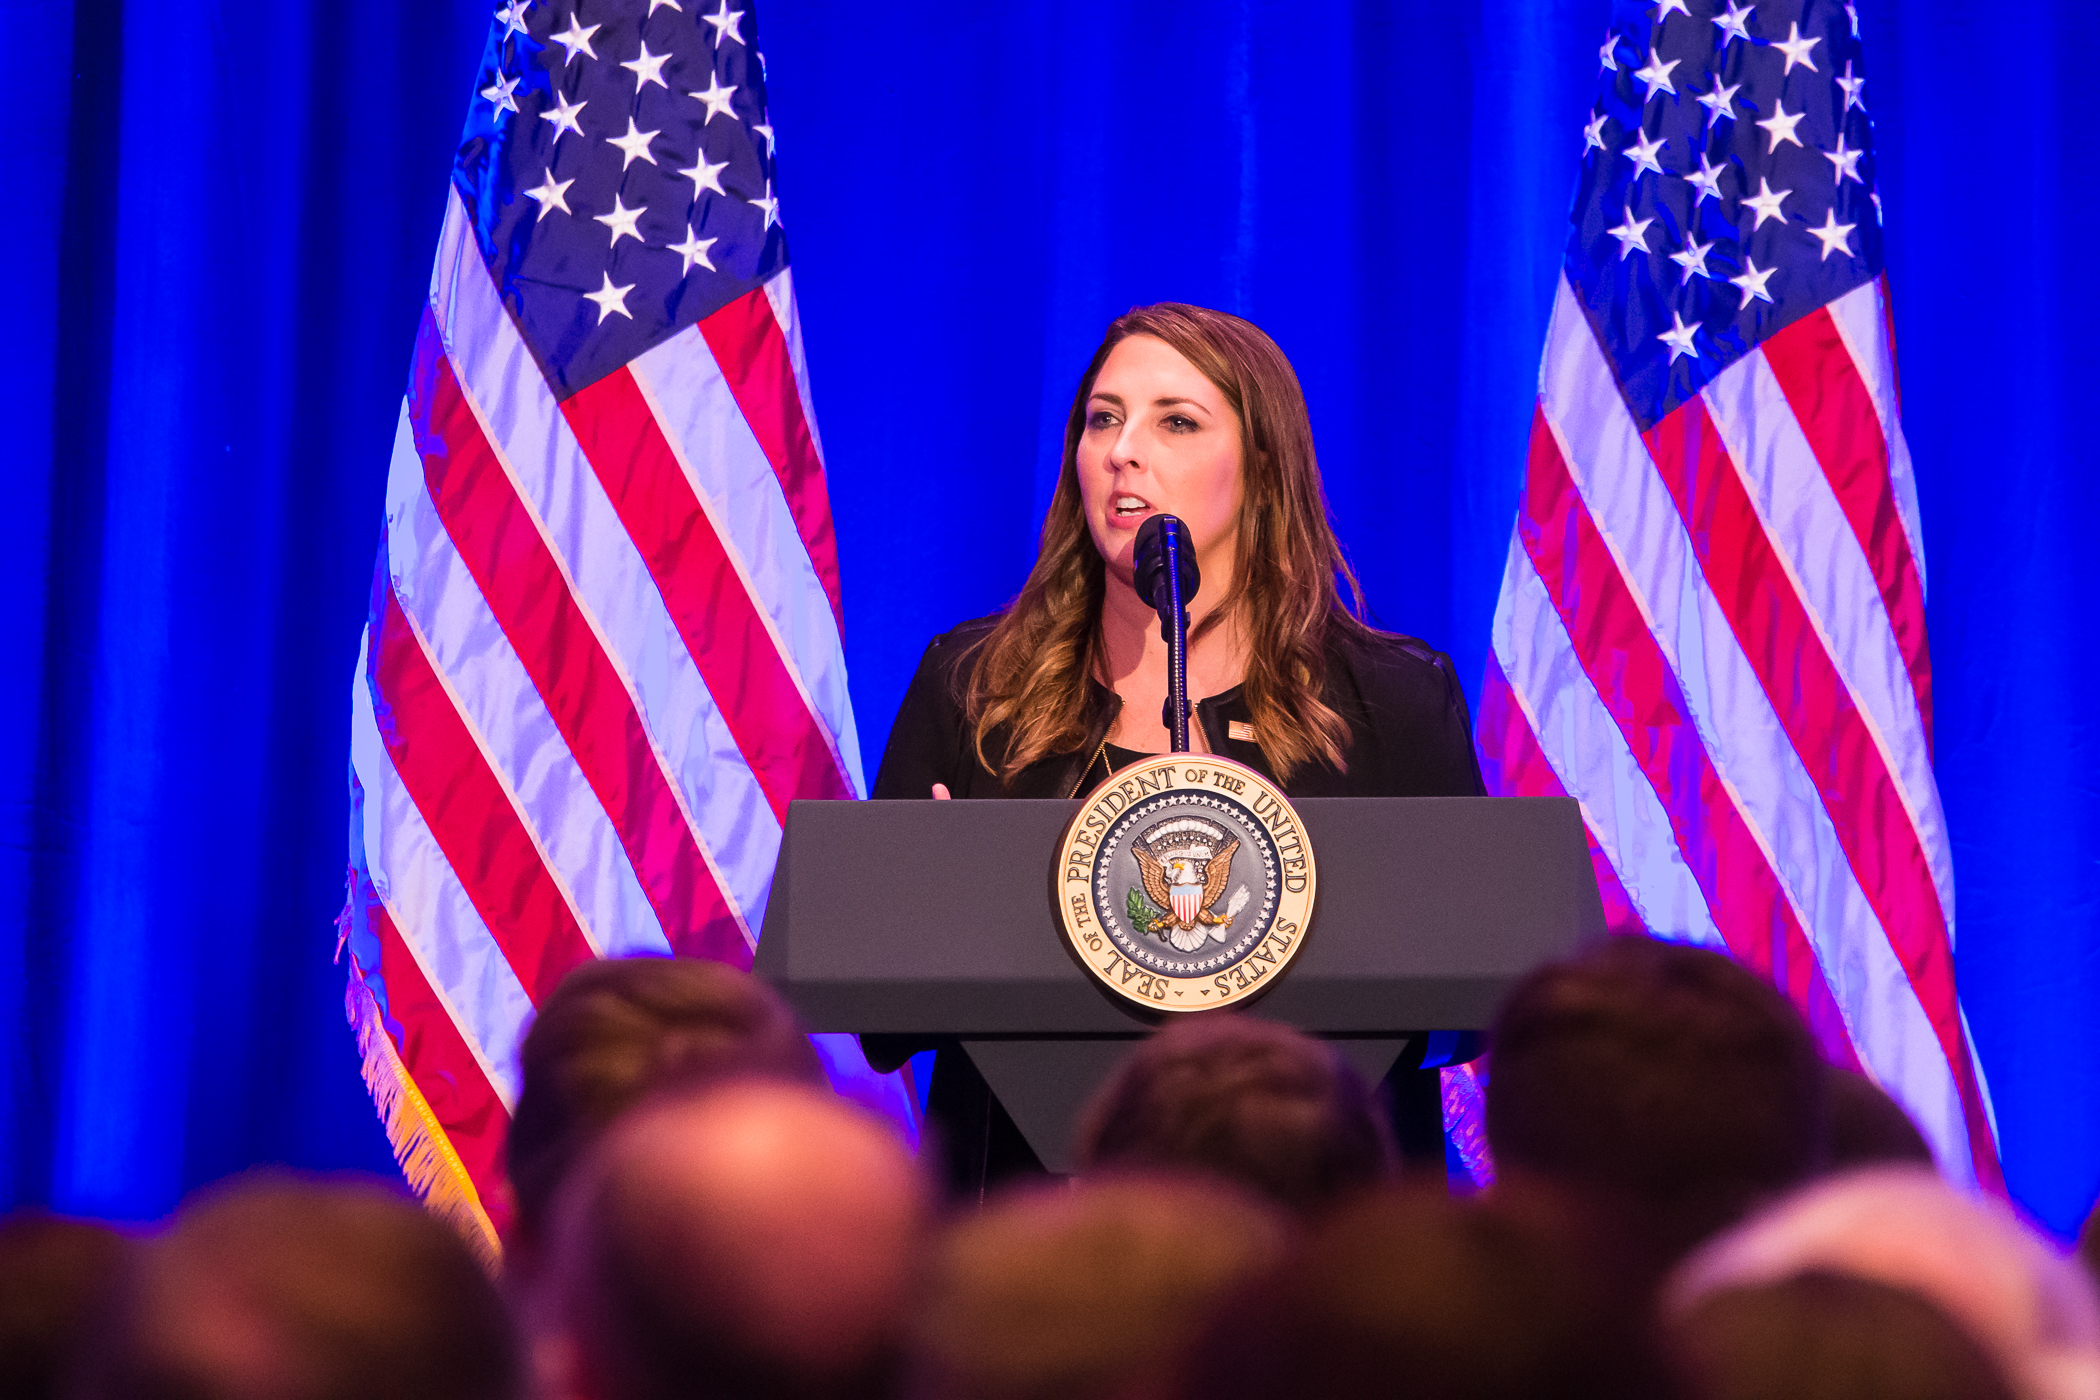 RNC Chairwoman Ronna McDaniel speaks at the Trump Victory event on October 25, 2017.